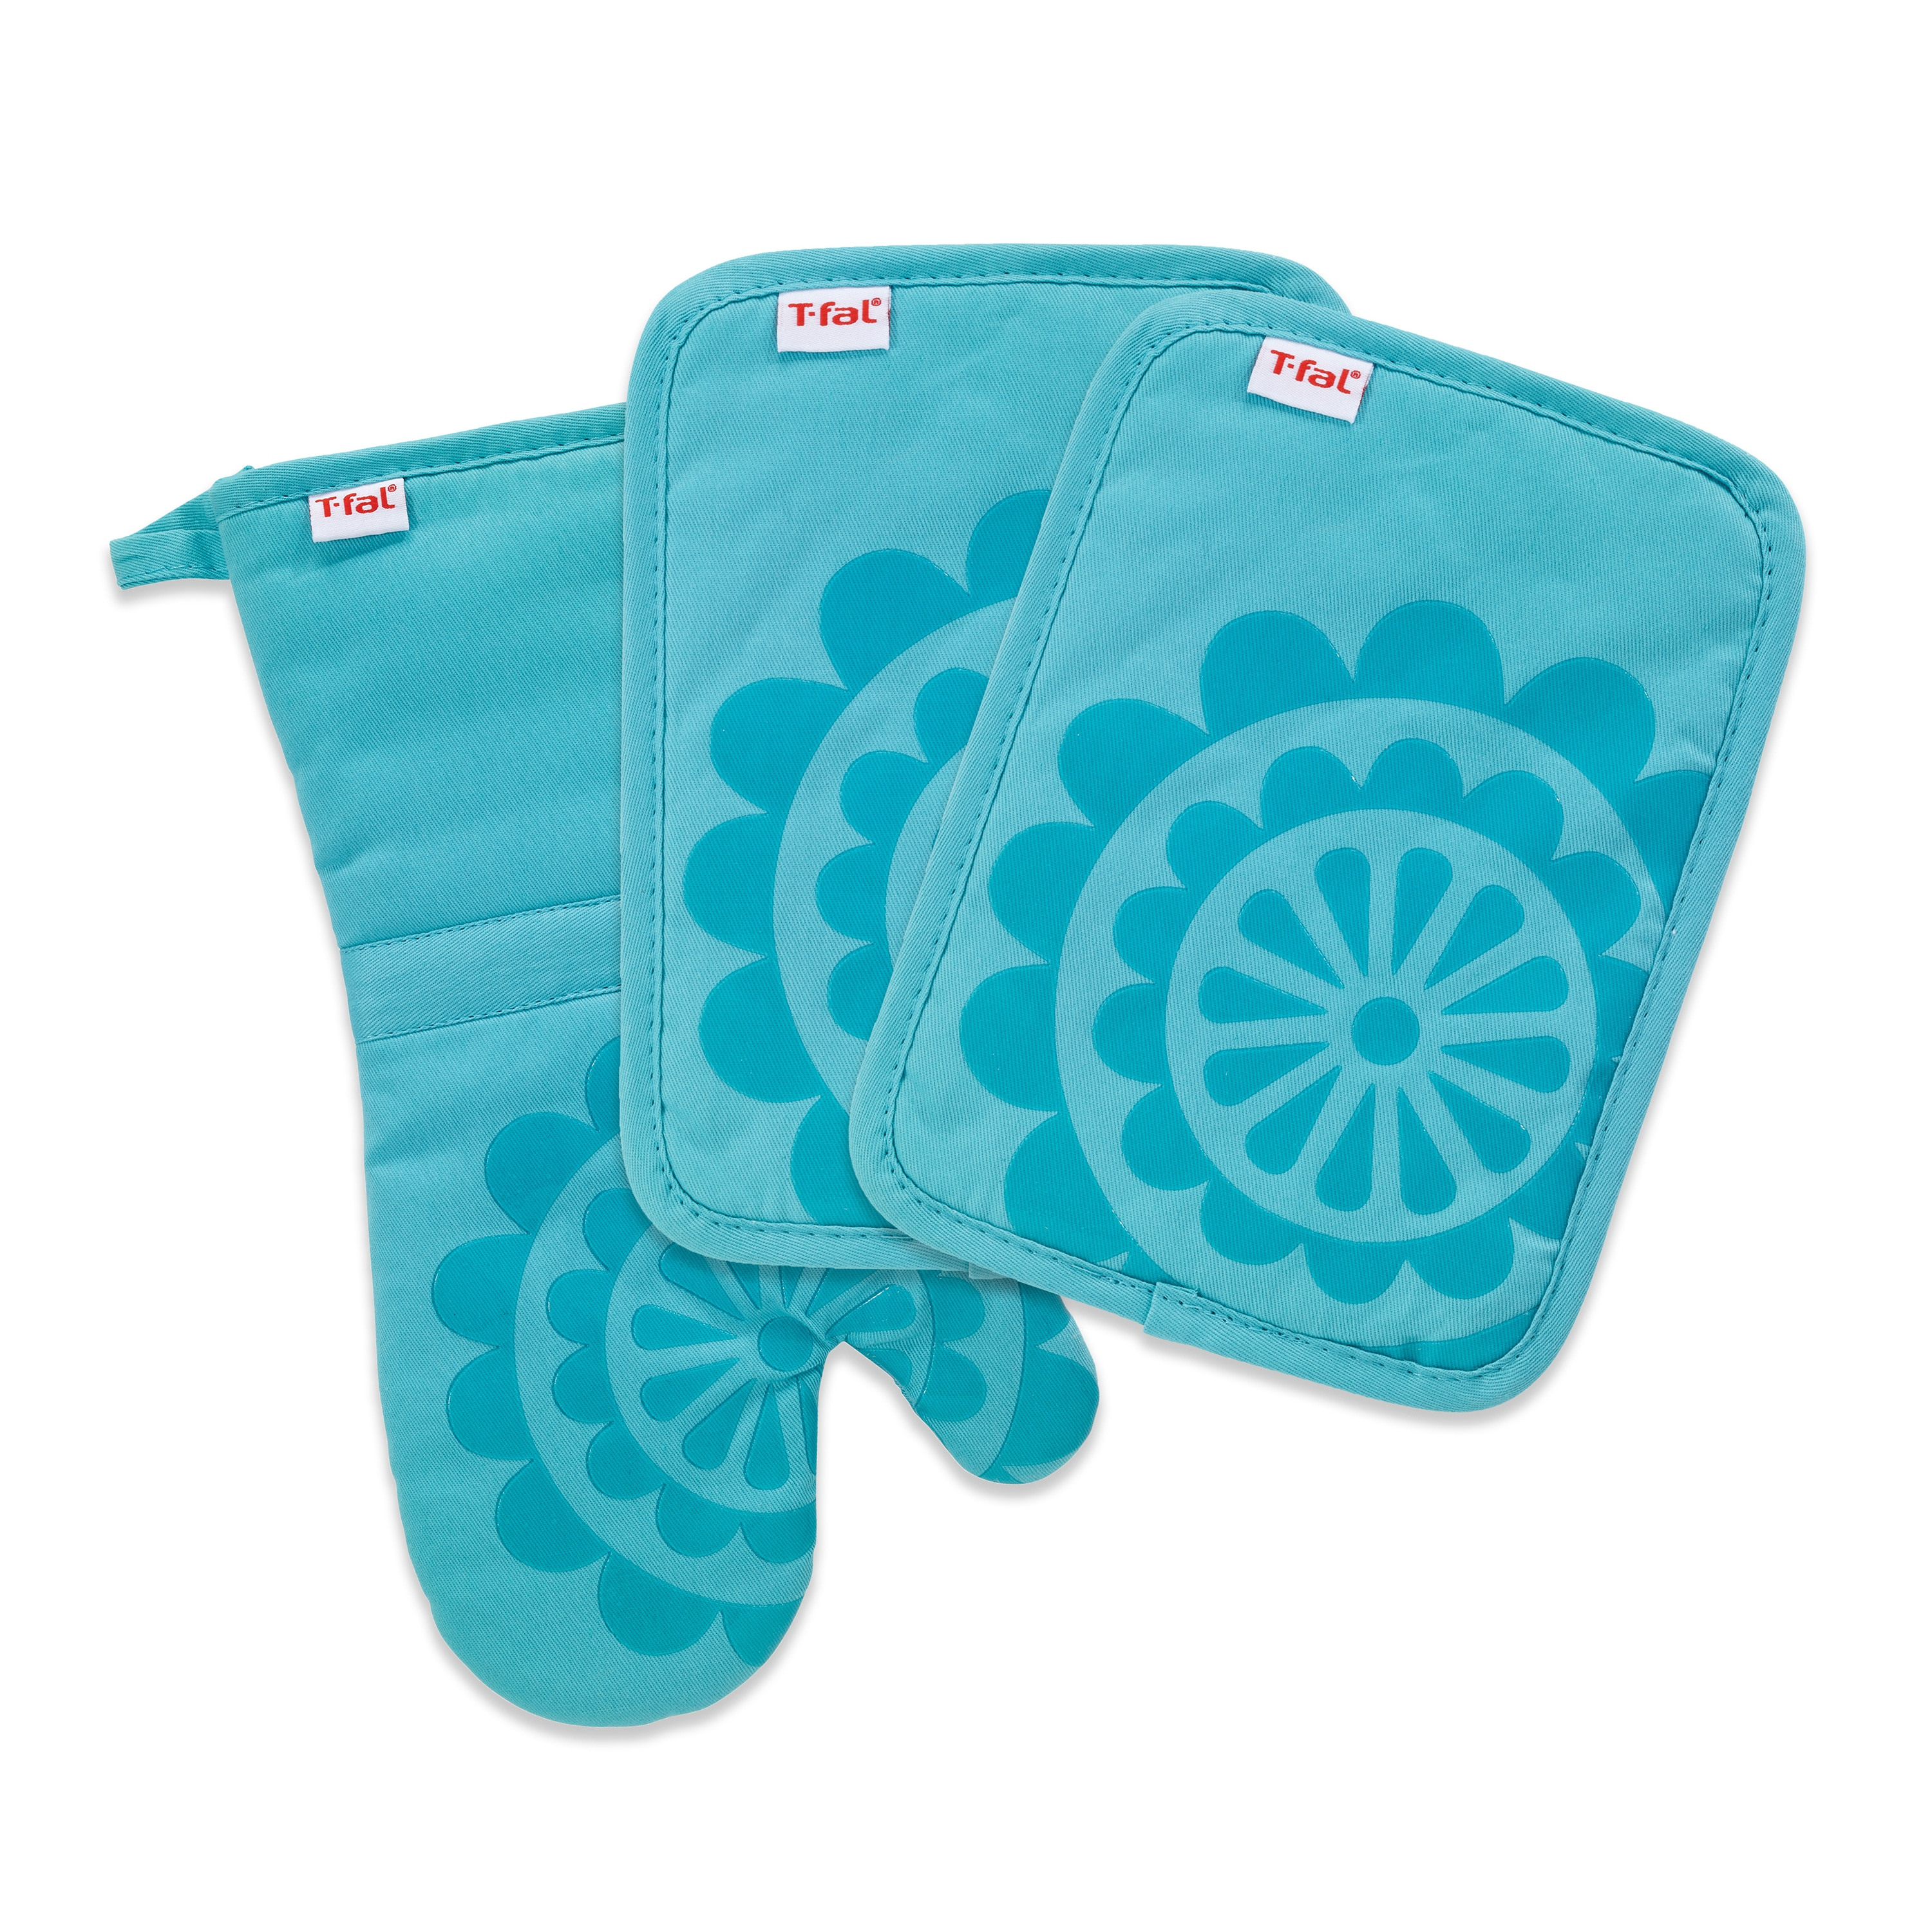 T Fal Textiles 3 Pack Print Silicone Medallion Cotton Twill Pot Holder Oven Mitt Set Overstock 15872045